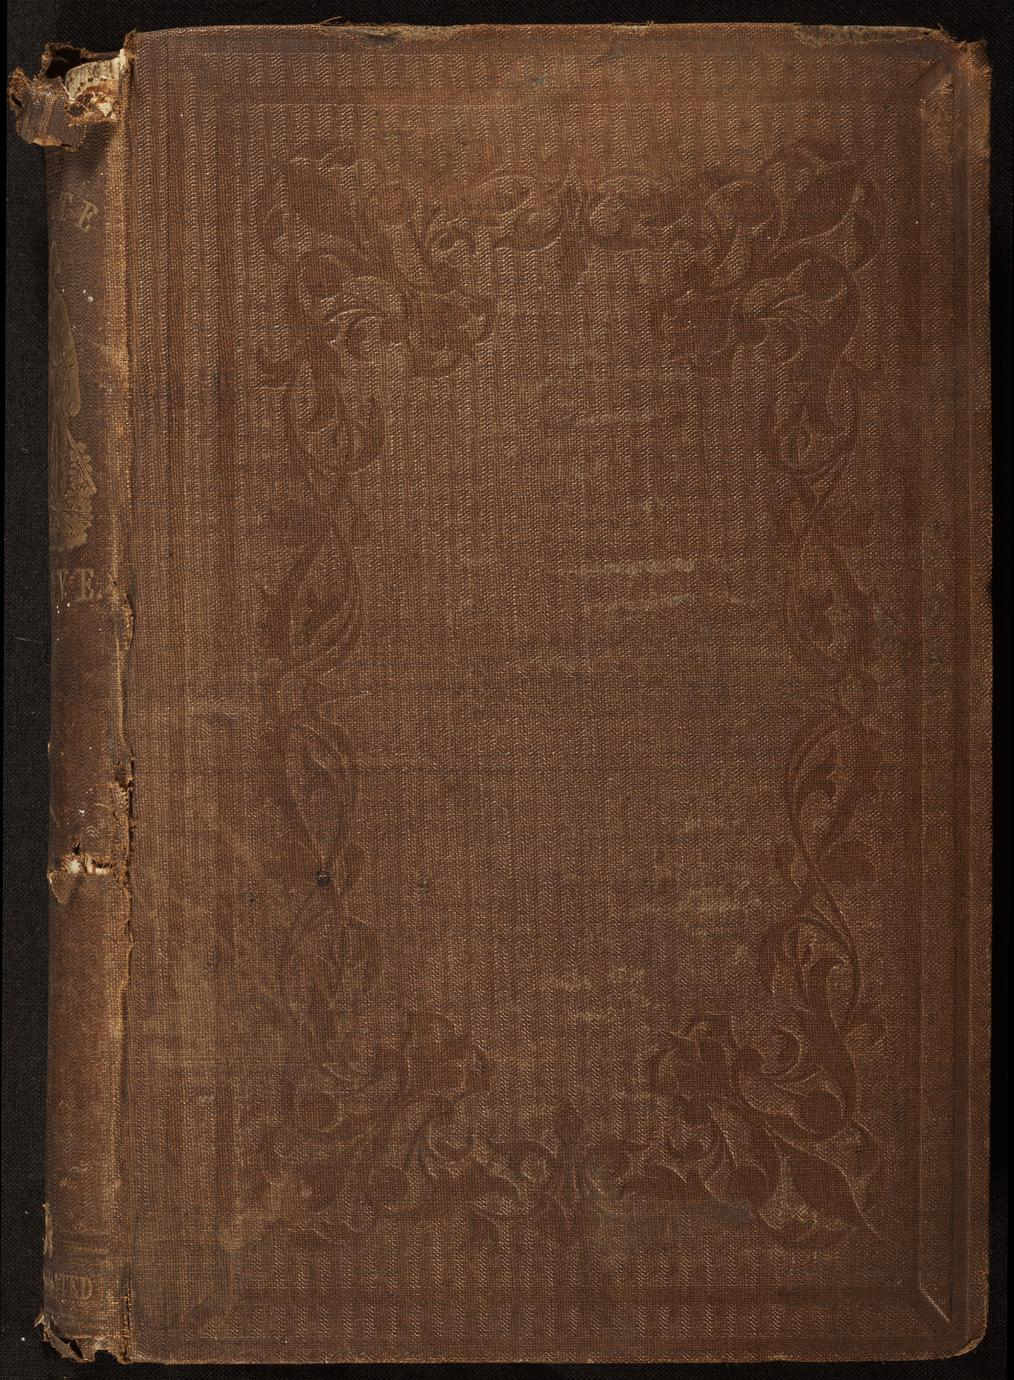 The white slave ; or, Memoirs of a fugitive : a story of slave life in Virginia, etc. (1 of 3)